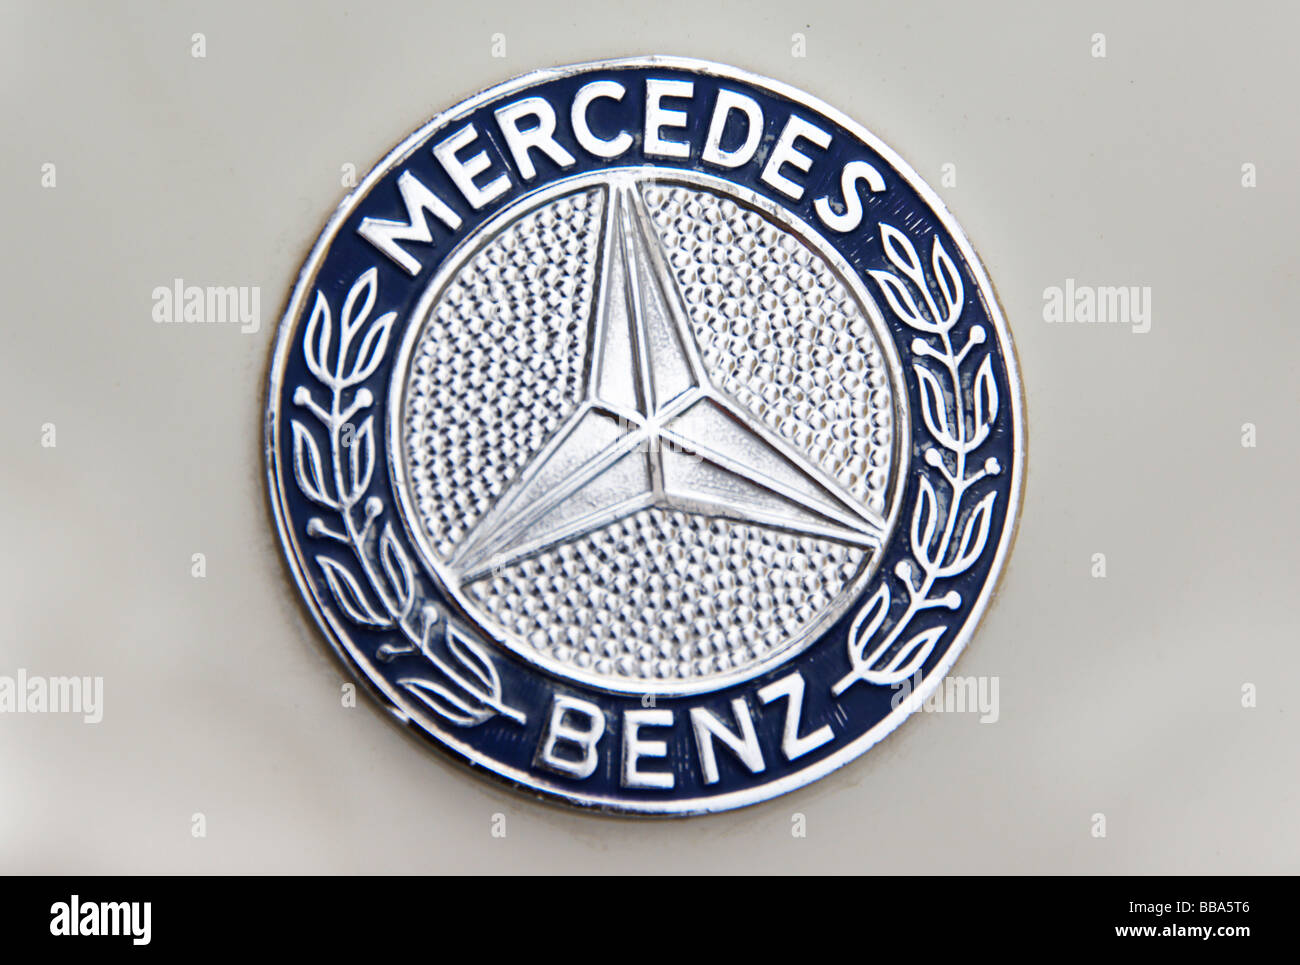 old mercedes benz logo on classic car